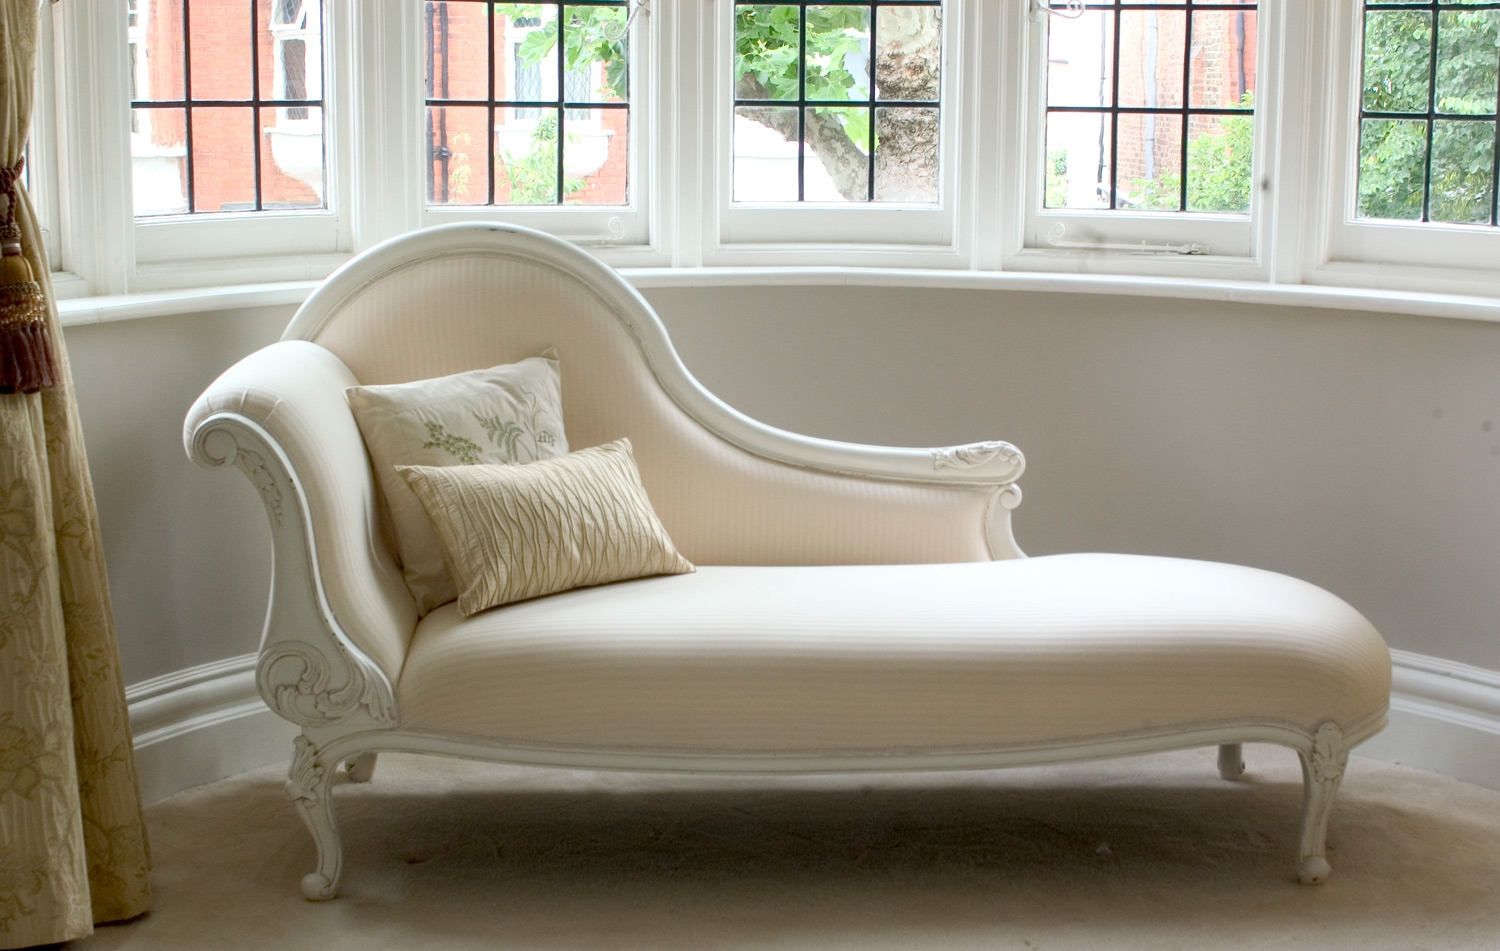 Lounge Chairs For Bedroom Elegance Of Living Chaise Longue Sofa Designs